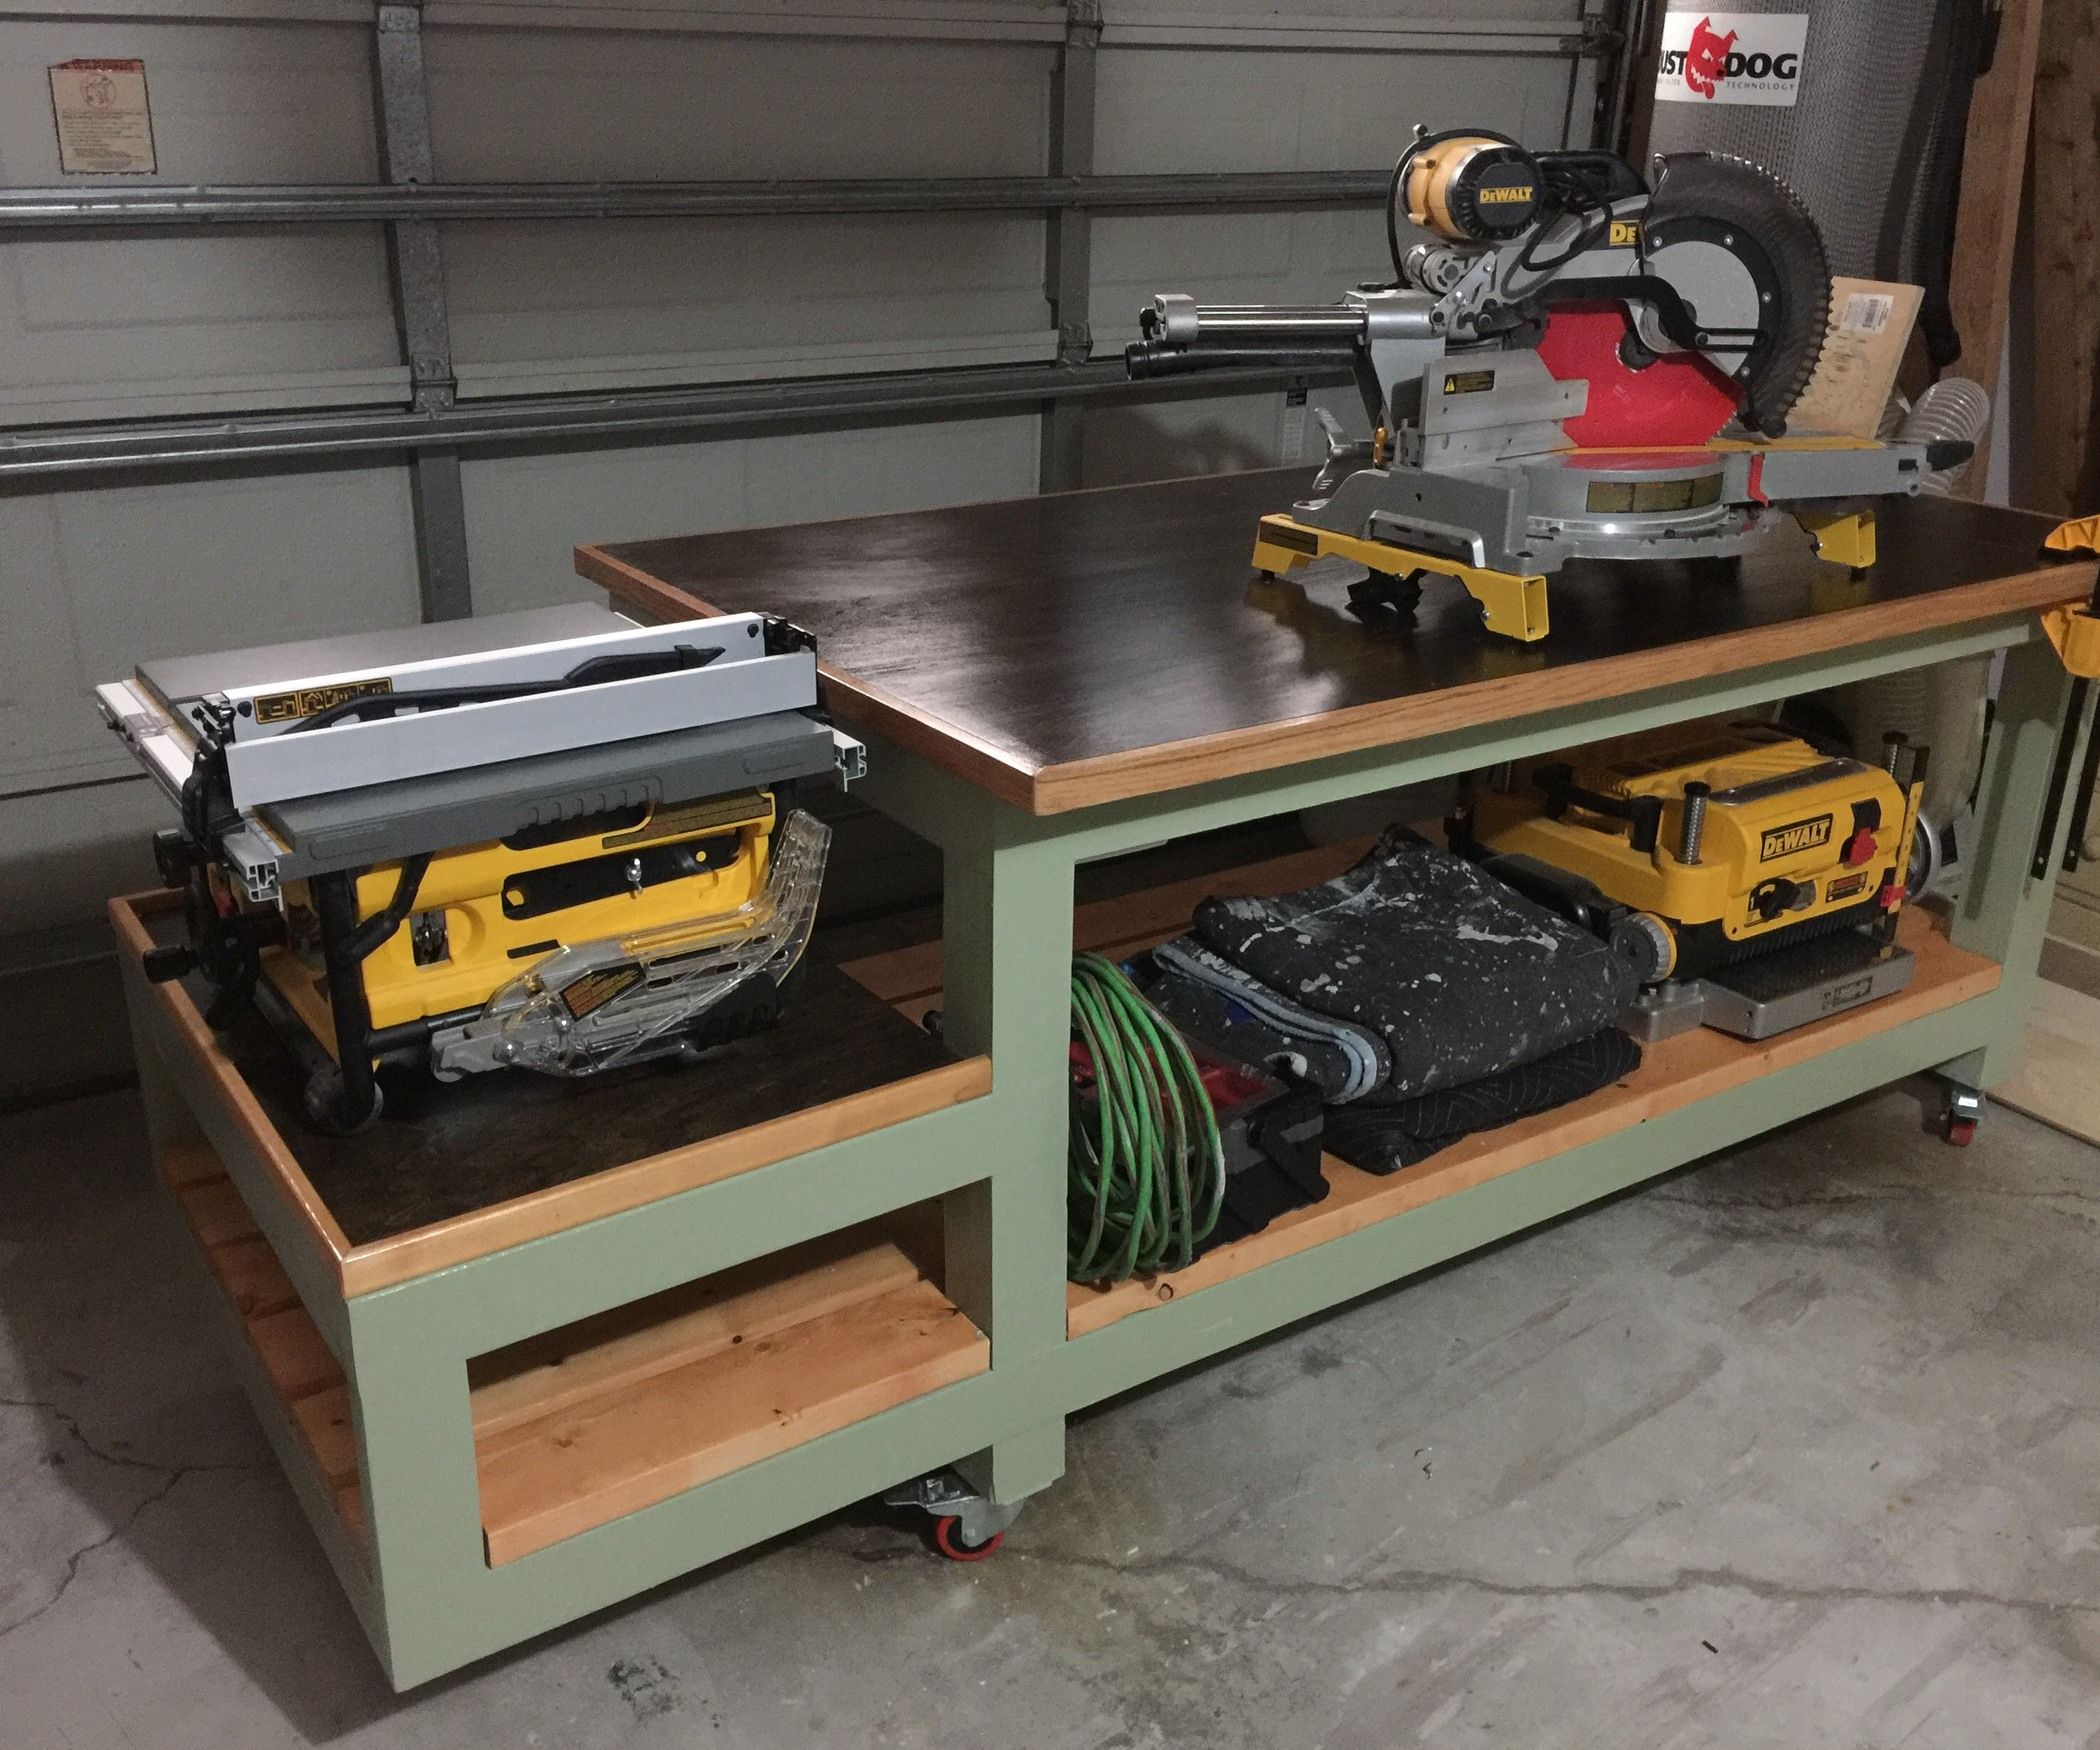 All In One Work Bench Tool Storage Storage And